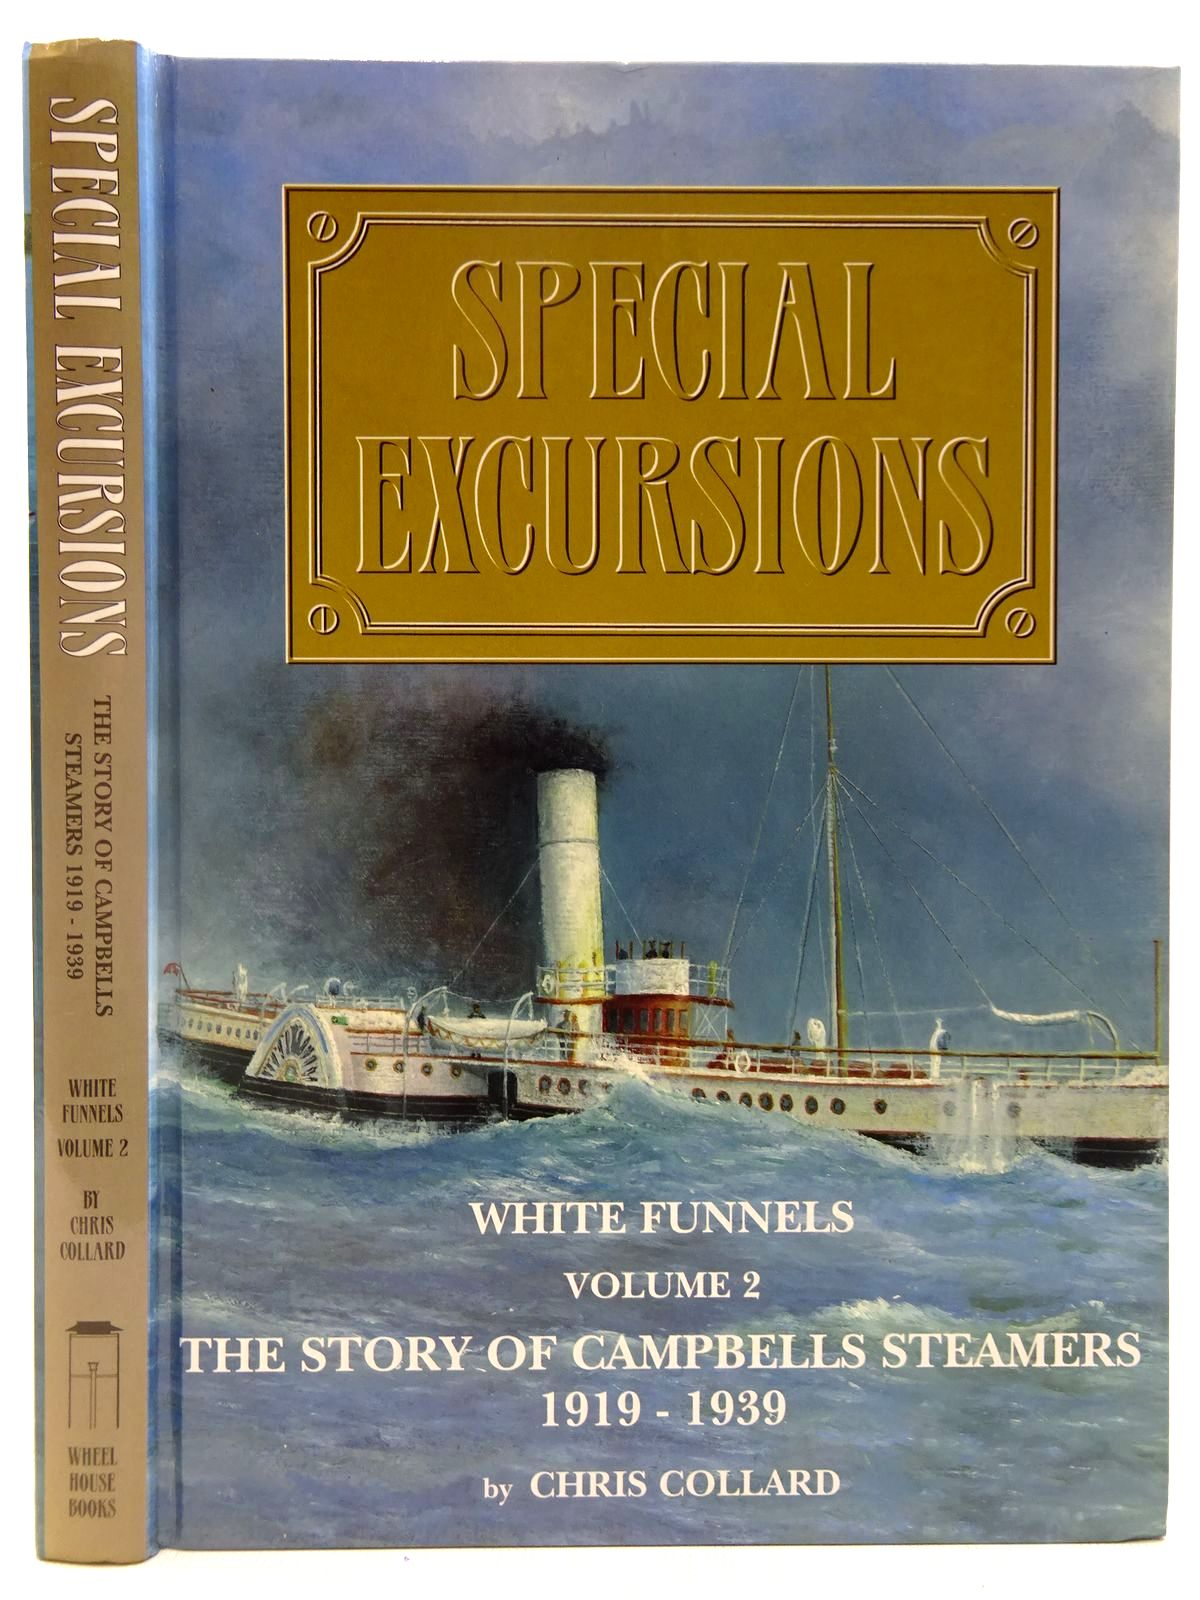 Photo of SPECIAL EXCURSIONS WHITE FUNNELS VOLUME 2 written by Collard, Chris published by Wheelhouse Books (STOCK CODE: 2128151)  for sale by Stella & Rose's Books